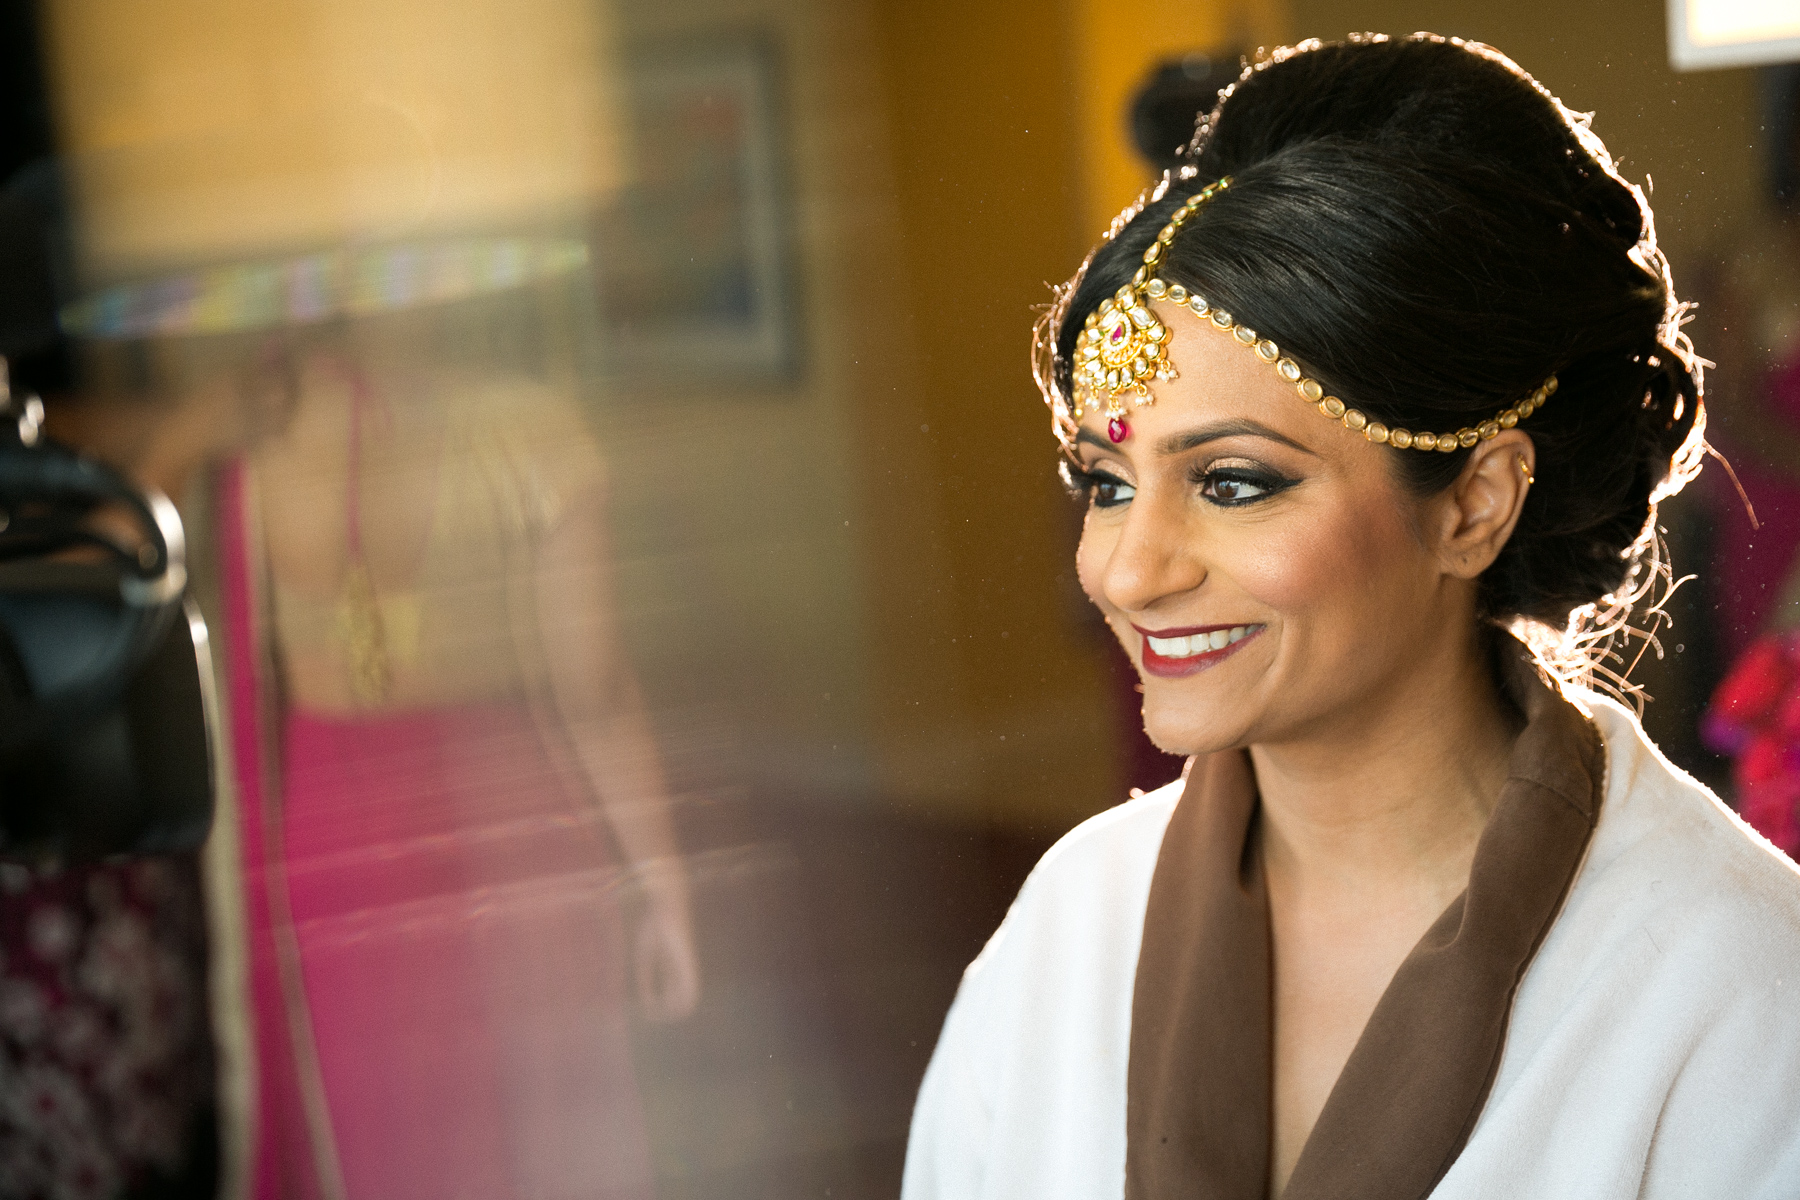 indian-south-asian-wedding-getting-ready-details-7.jpg